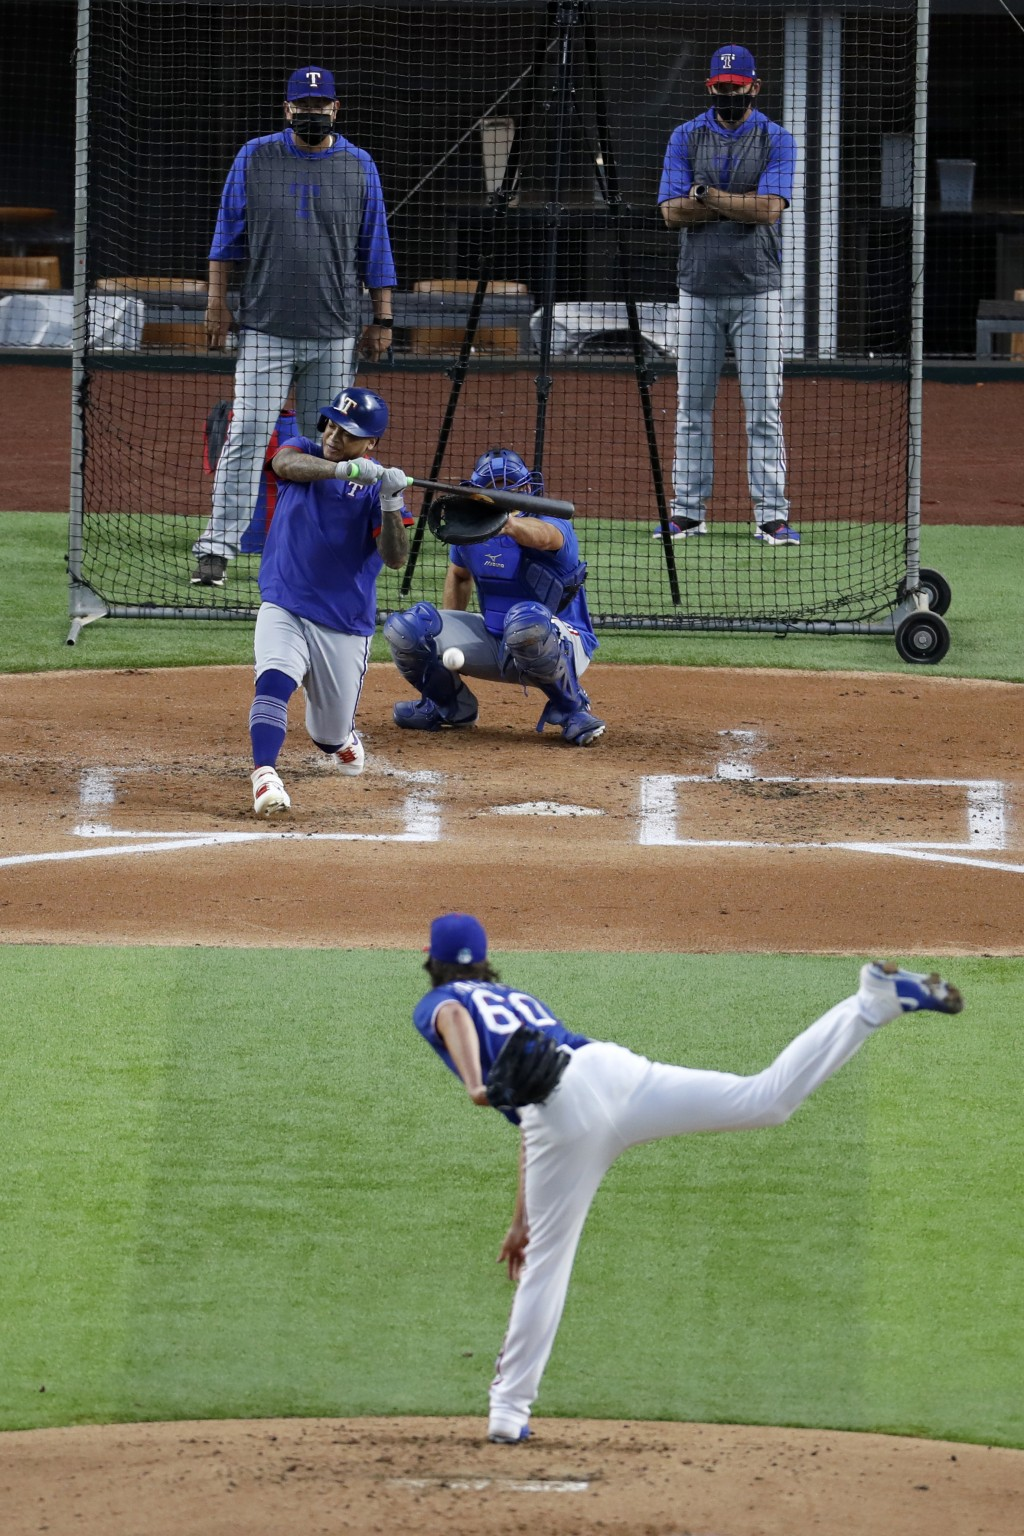 Texas Rangers' Luke Farrell throws to Willie Calhoun as catcher Jeff Mathis, pitching coach Julio Rangel, left rear and manager Chris Woodward, right ...